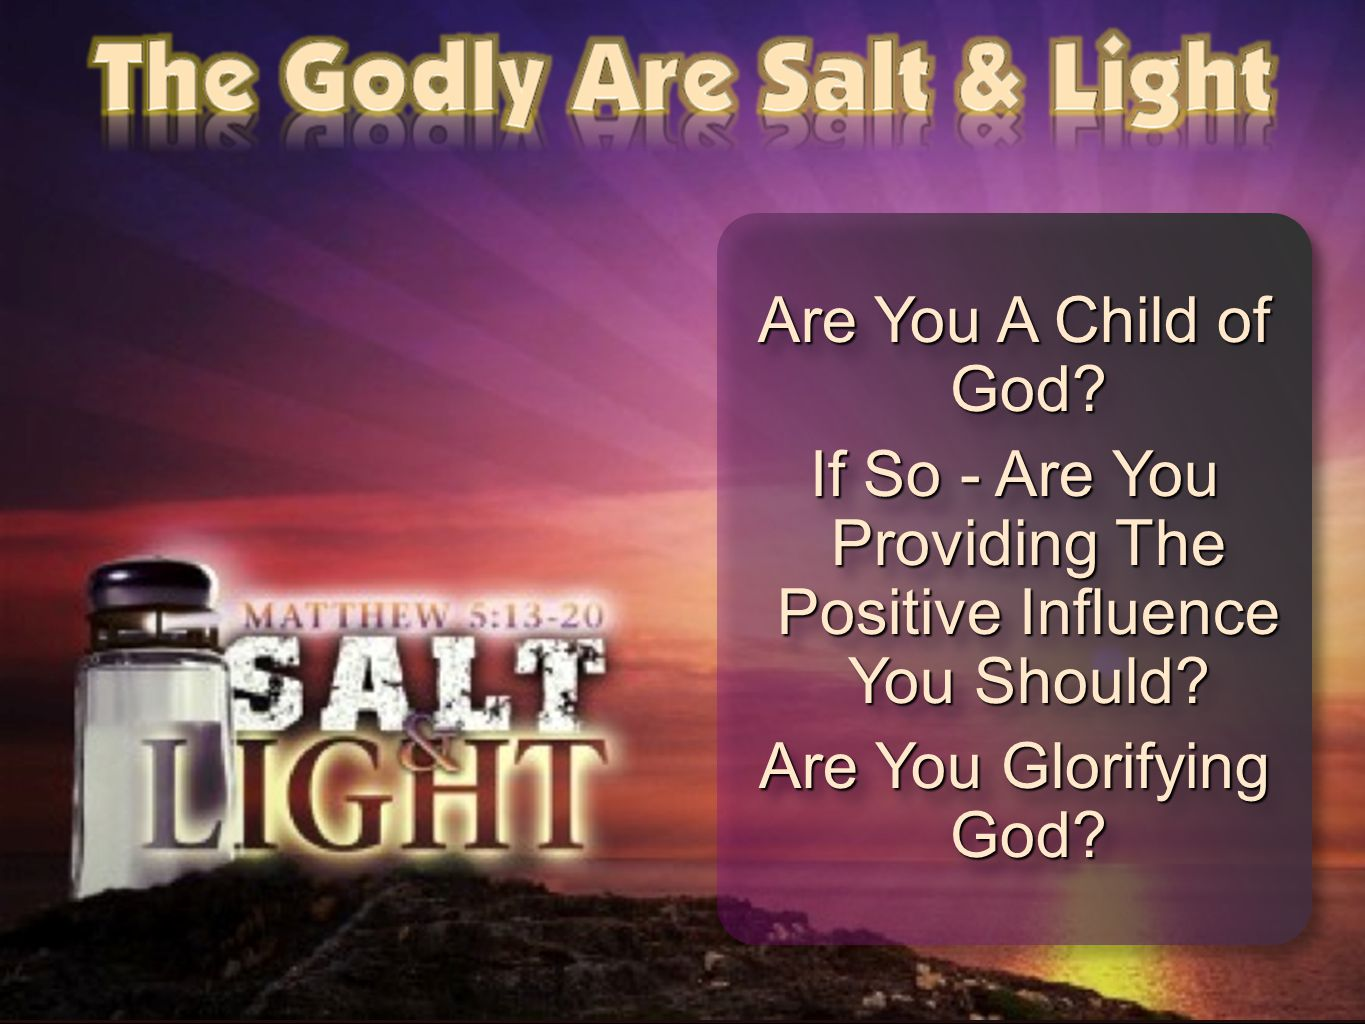 Are You A Child of God? If So - Are You Providing The Positive Influence You Should? Are You Glorifying God? Are You A Child of God? If So - Are You P